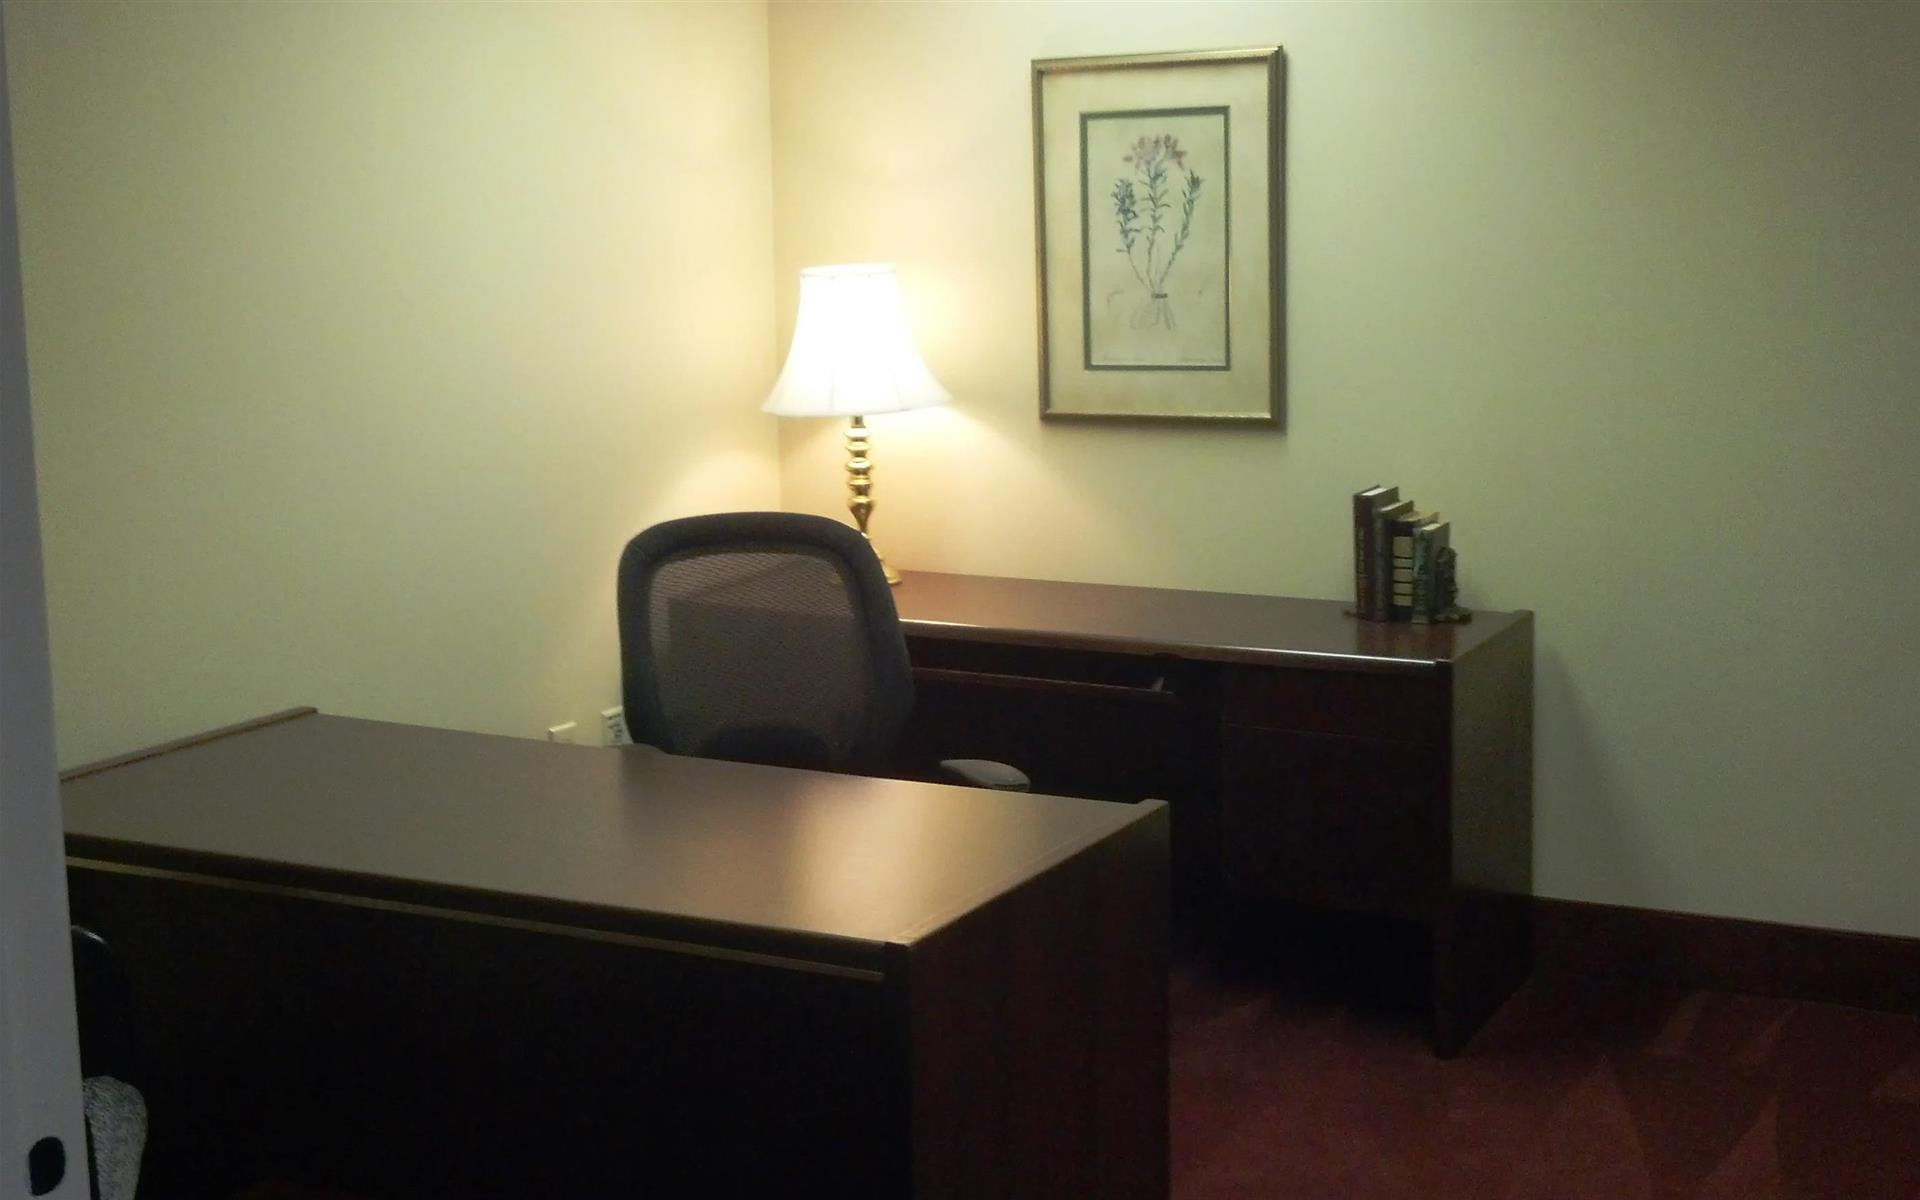 Peachtree Offices at Midtown, Inc. - Office 34 - Interior